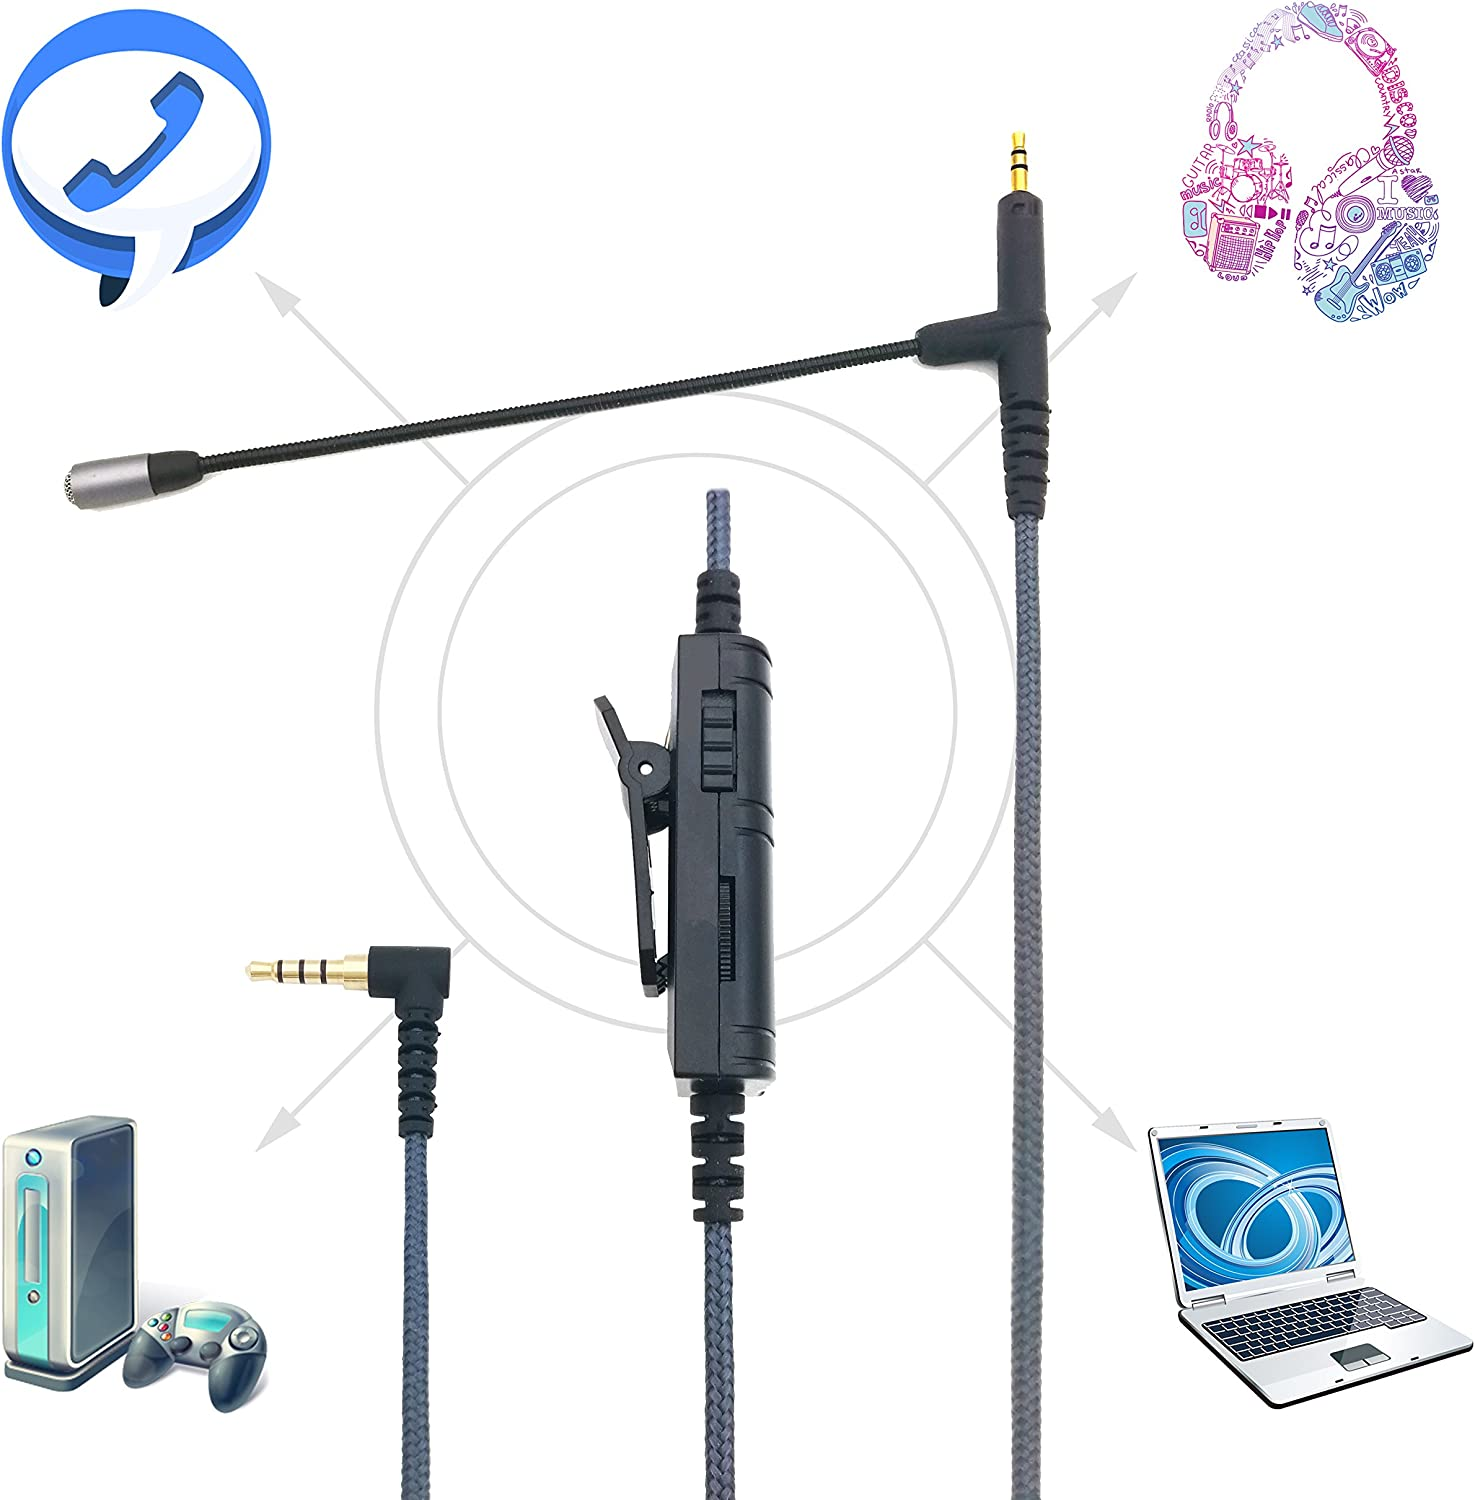 Sukira Boom Gaming Mic for PS4 Mute Voip Microphone iPhone PC 150CM Xbox One Android Phone to 2.5mm Jack Headphones Sennheiser HD598 HD558 HD518 ATH-M50x ATH-M40x M70x with Volume Control